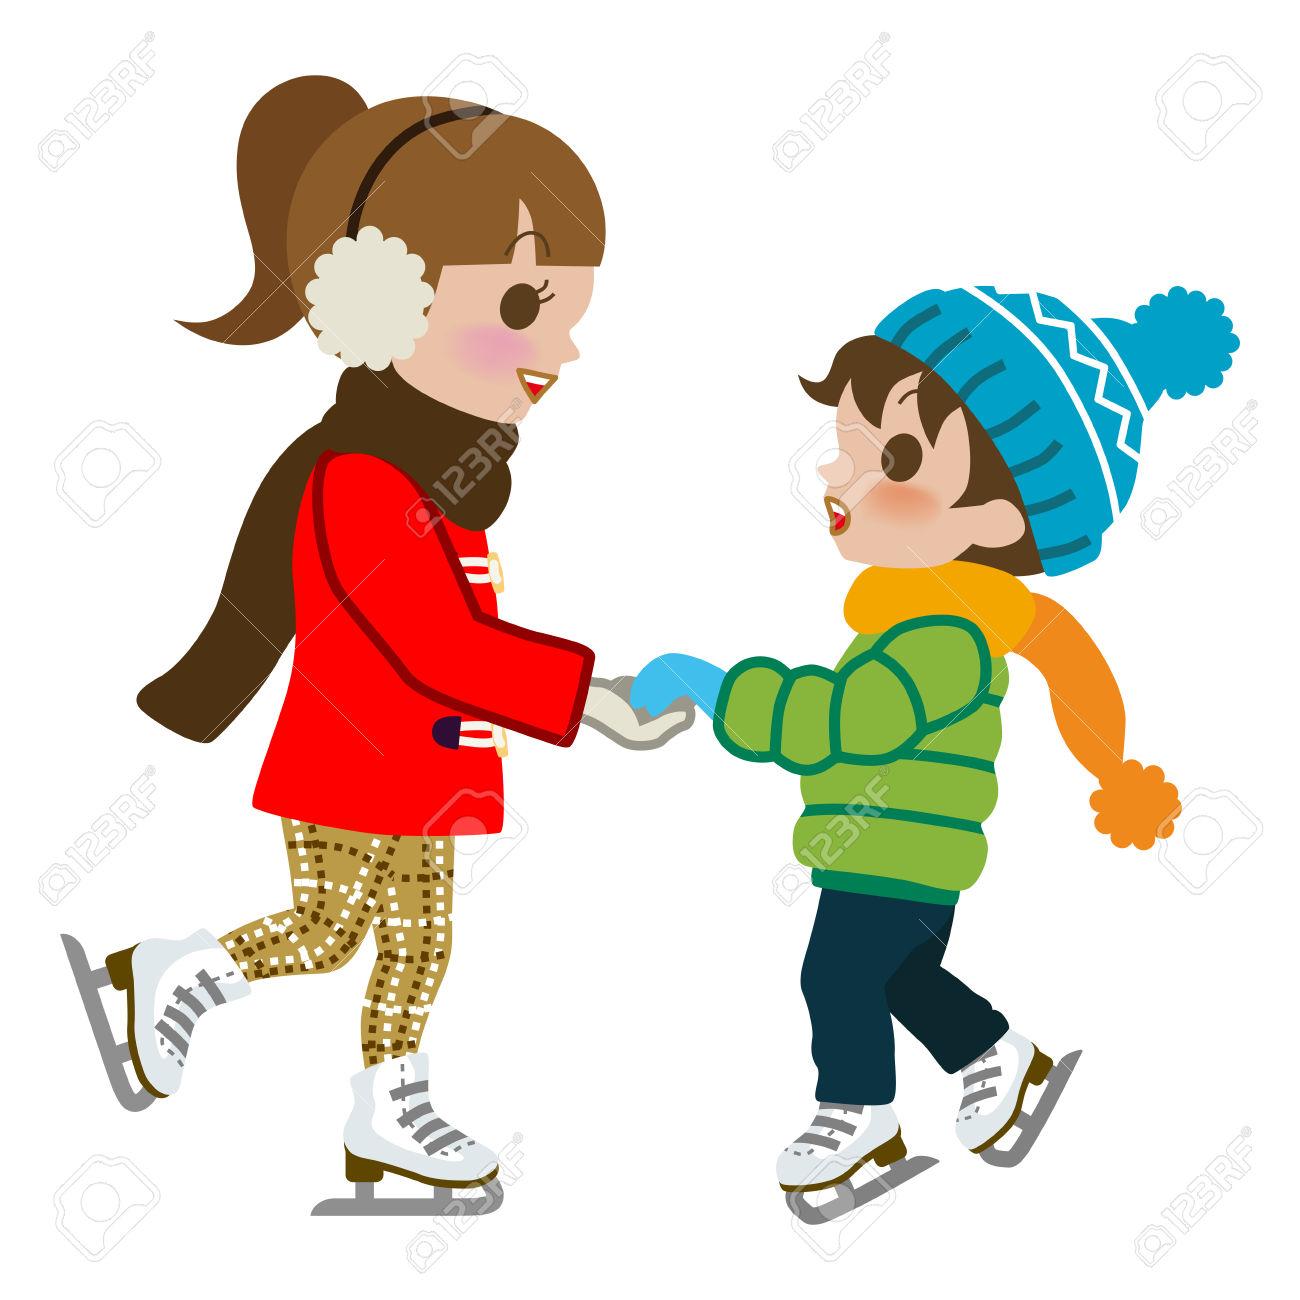 ice skating clipart images - Clipground